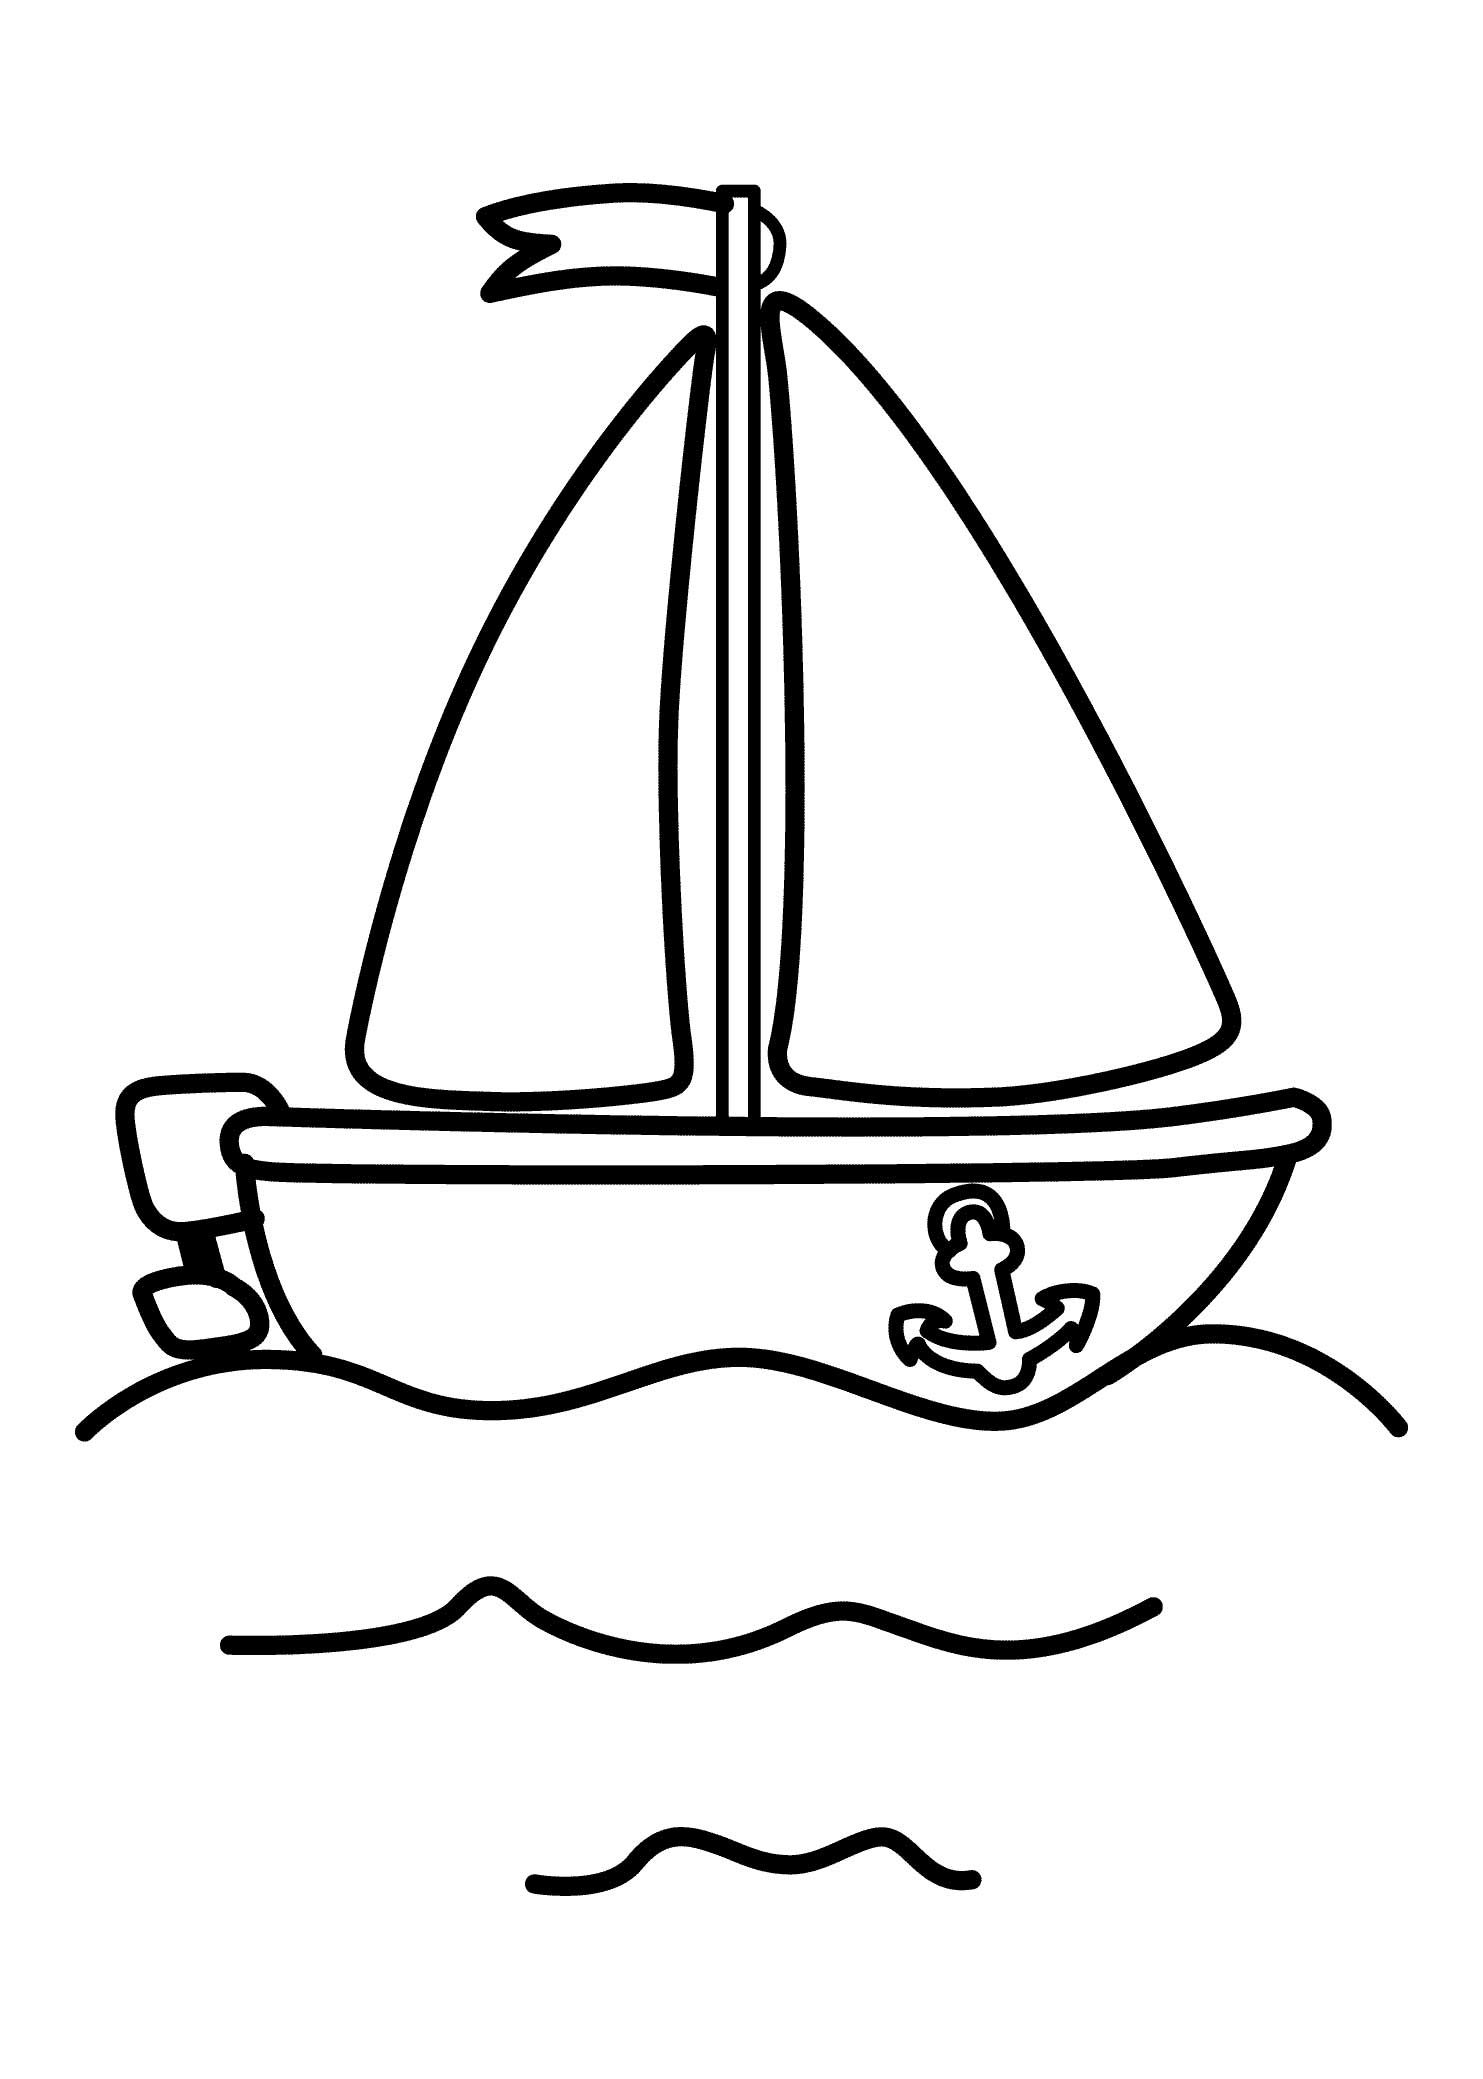 Pinshreya Thakur On Free Coloring Pages   Pinterest   Coloring - Free Printable Boat Pictures